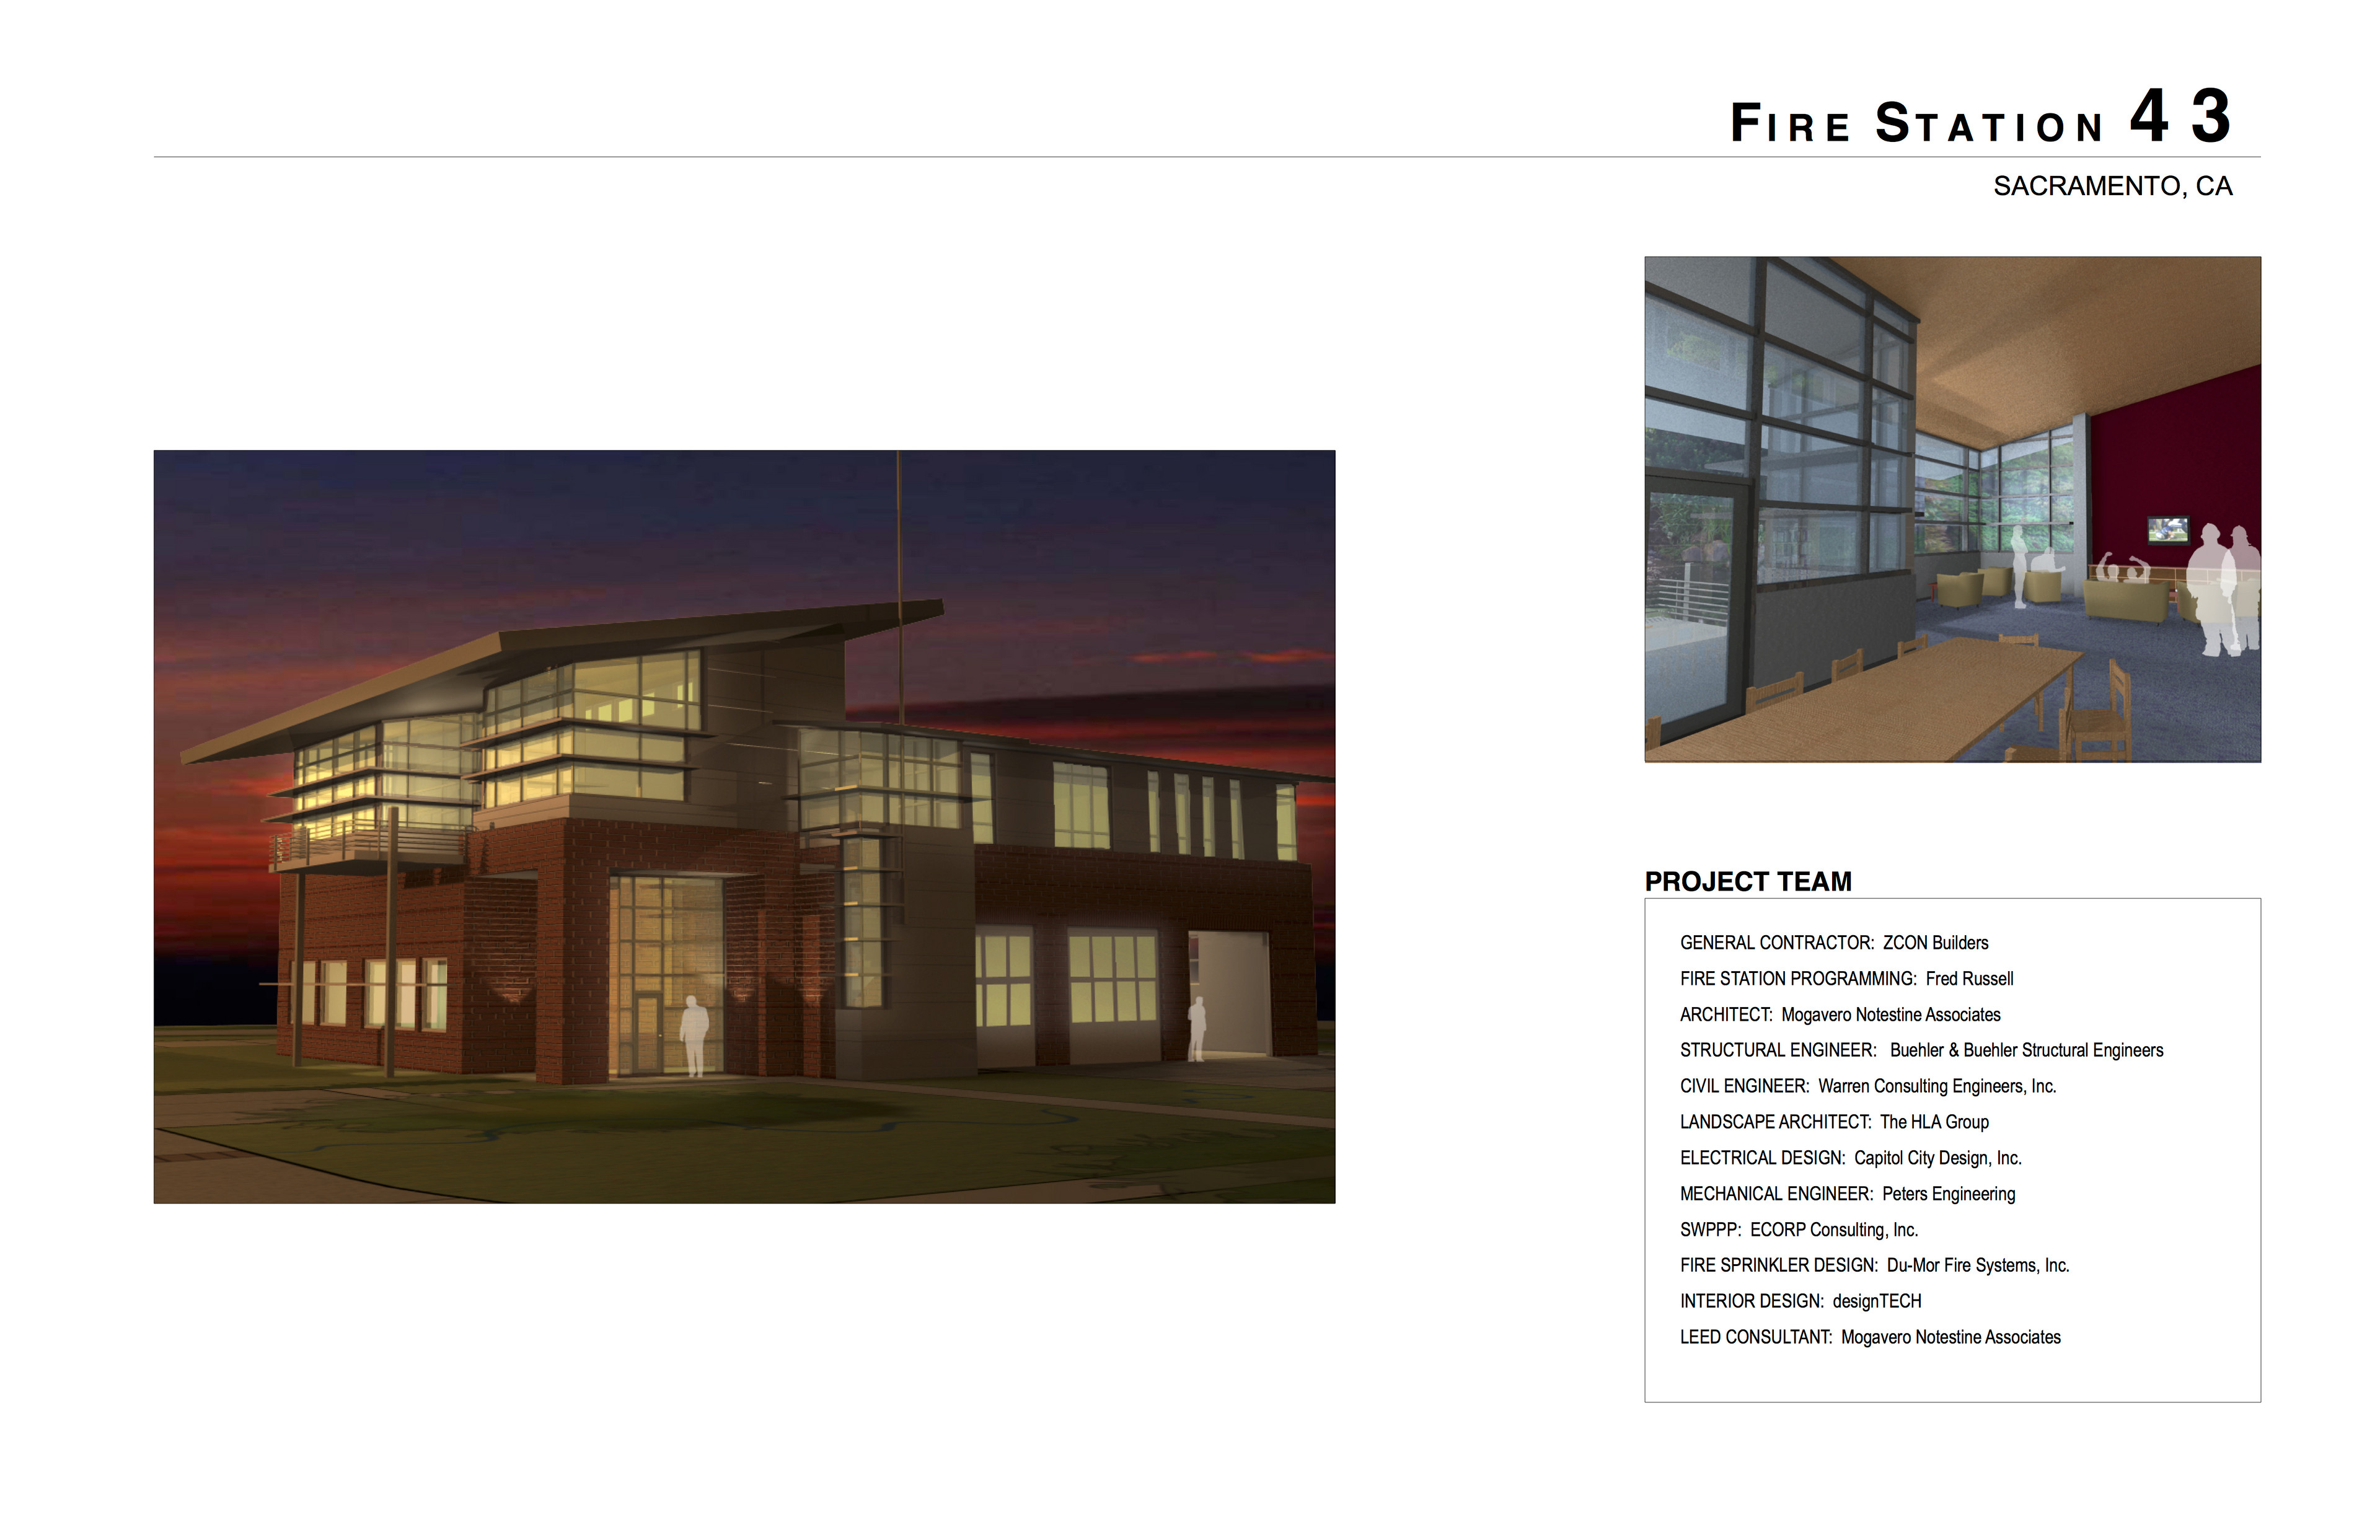 Old work - coversheet from a competition for which I was the renderer and a design team member (very few of us on that team) a long time ago - these renders were done in ArchiCAD, back before they brought Cinerender into it: this was Lightworks renderer.